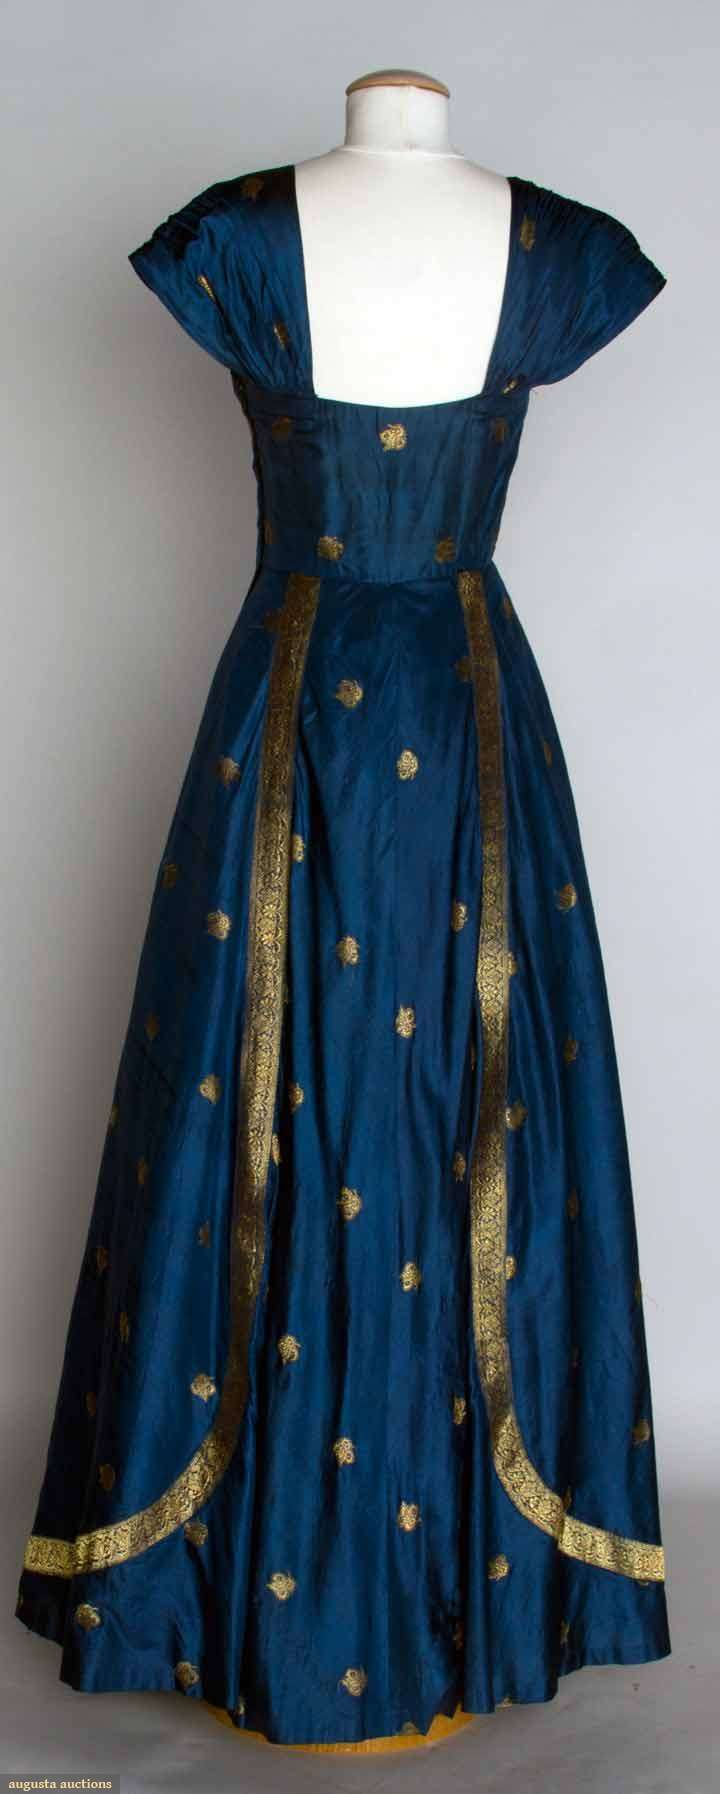 Best Ideas About Gold Evening Gowns On Pinterest Formal Prom - How to make designer dress at home